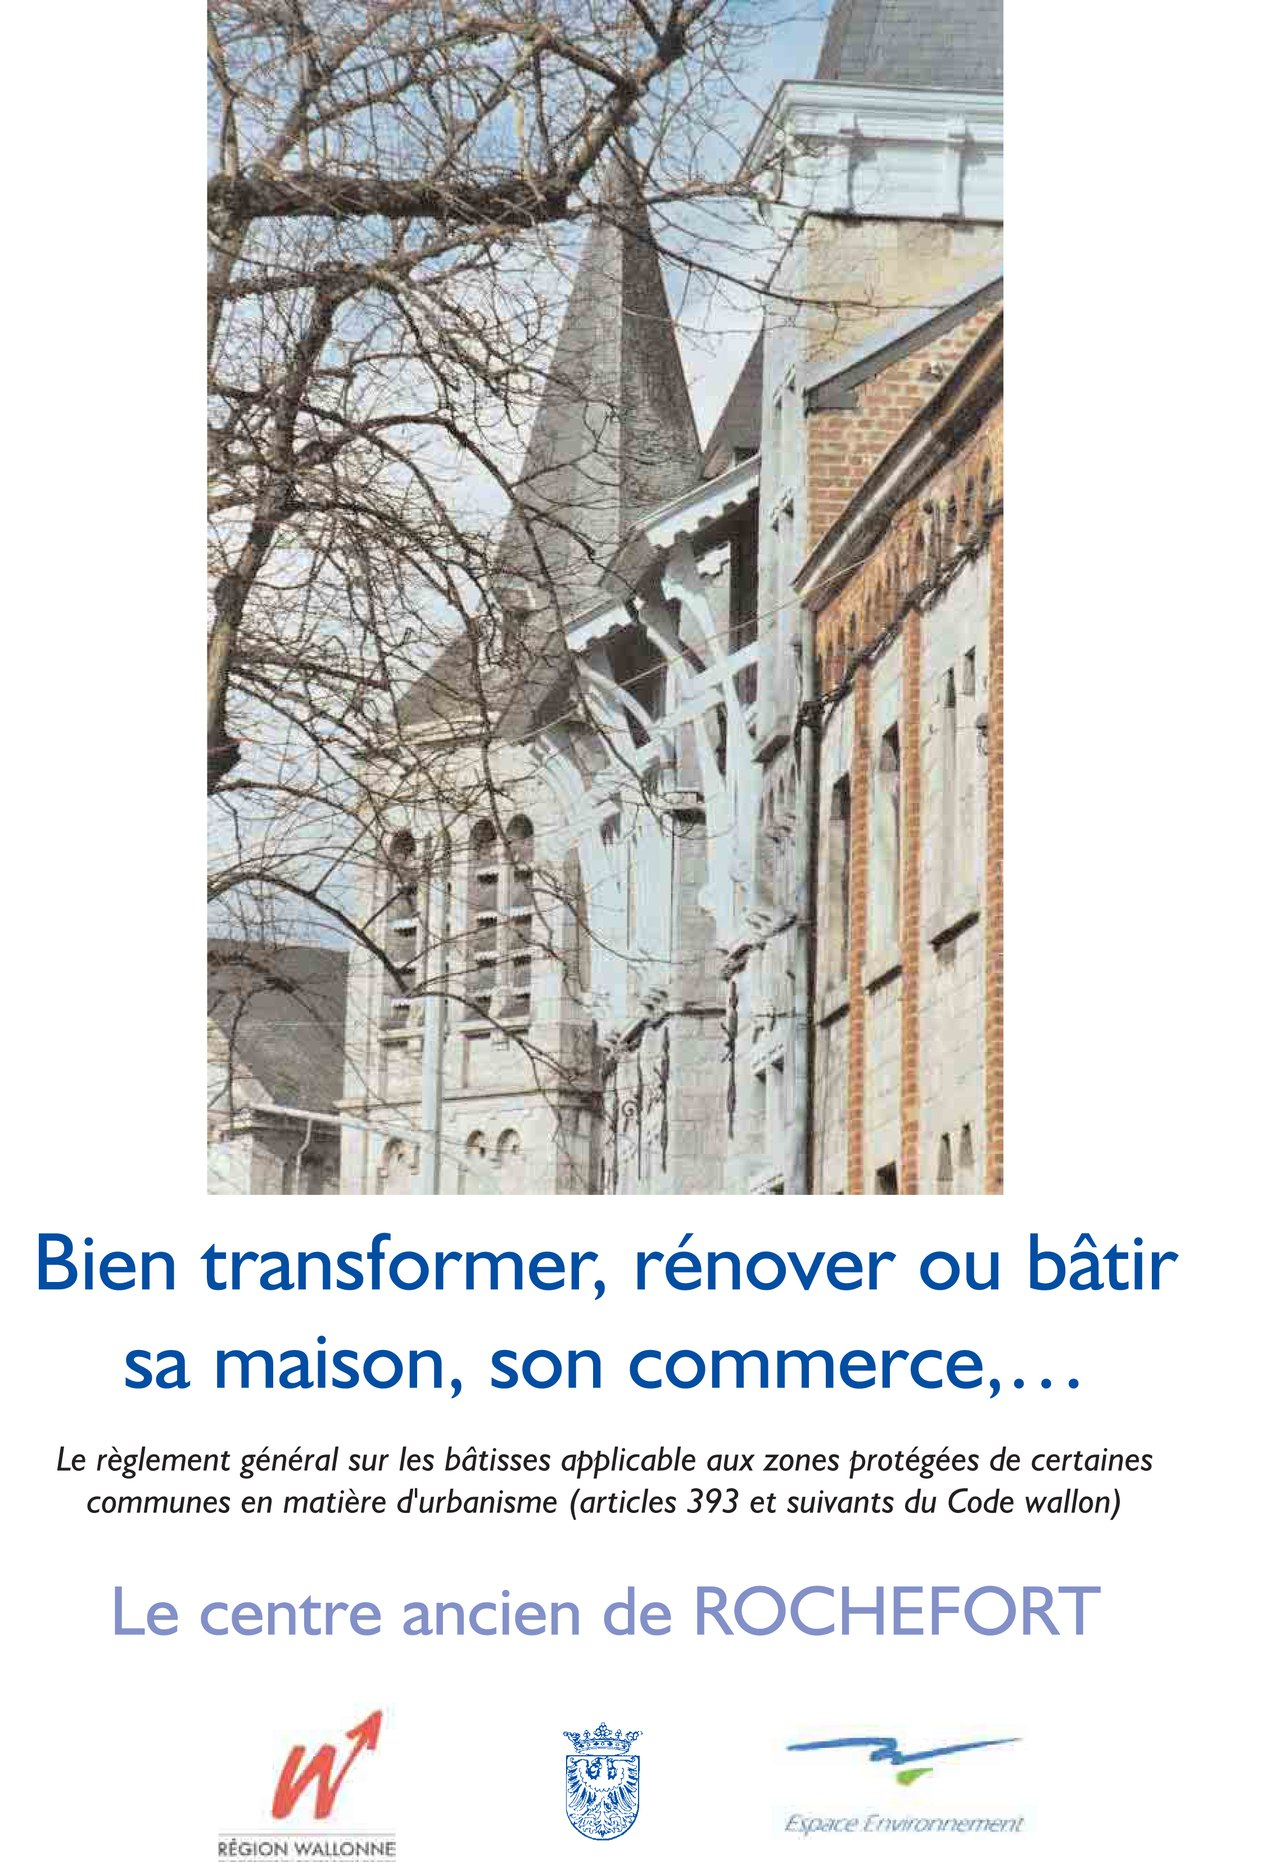 Bien transformer r nover ou b tir sa maison son commerce for Batir sa maison prix